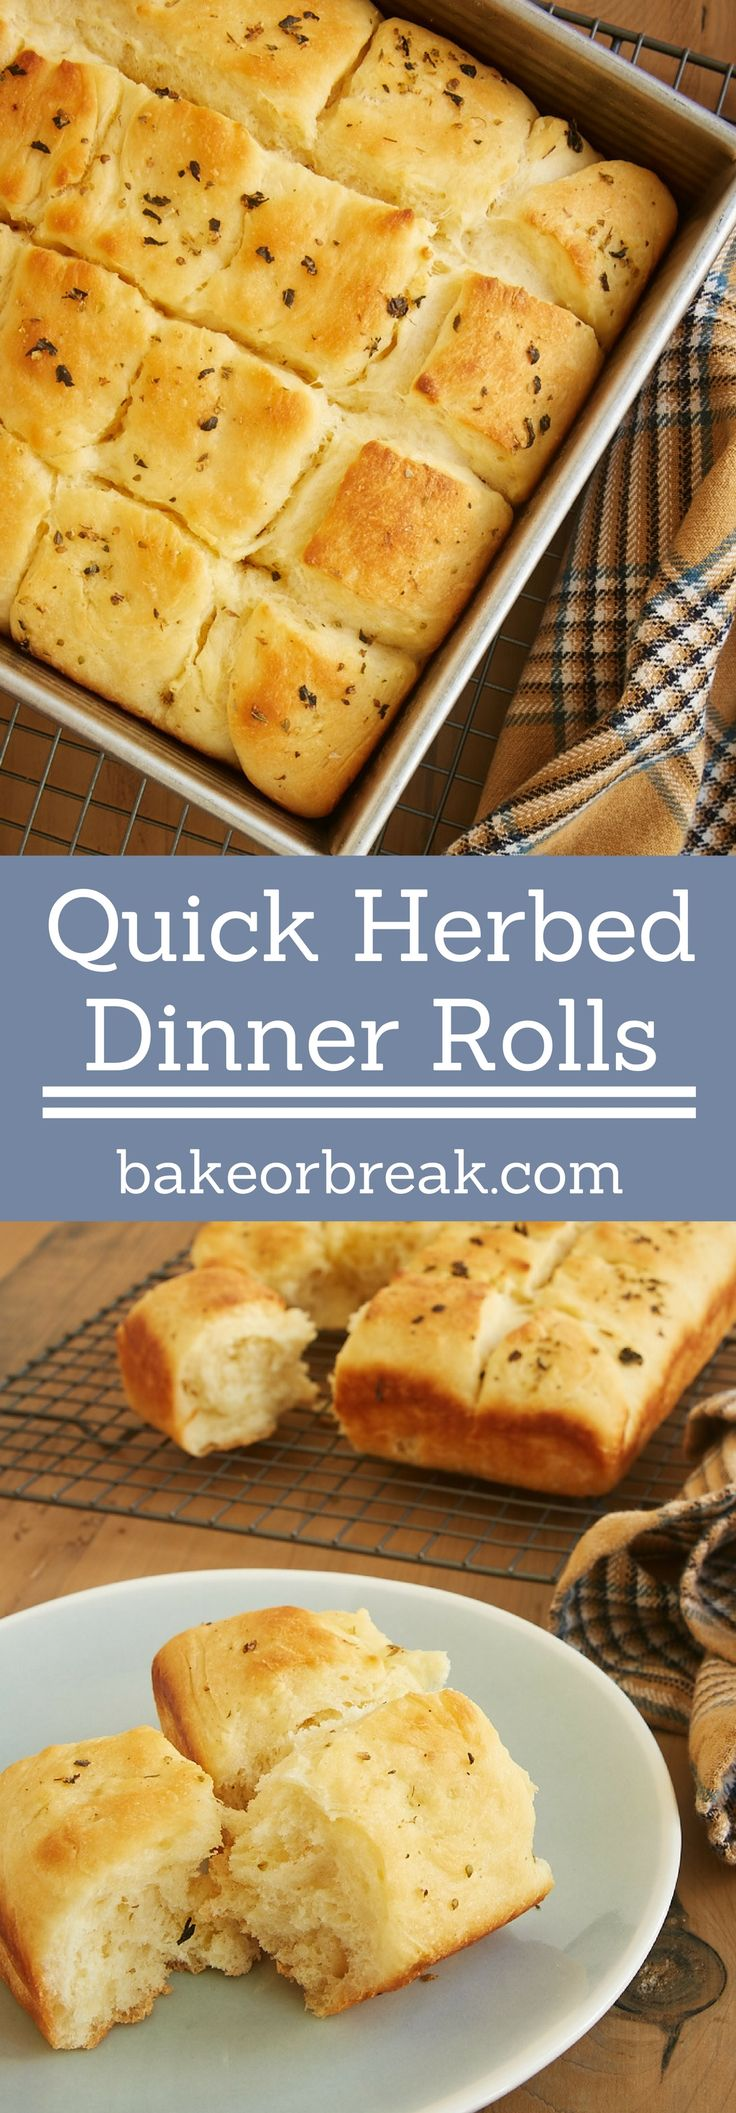 Quick Herbed Dinner Rolls make yeast baking so easy. They mix quickly and only need a short time to rise. And they are wonderfully soft and oh so delicious! - Bake or Break ~ http://www.bakeorbreak.com